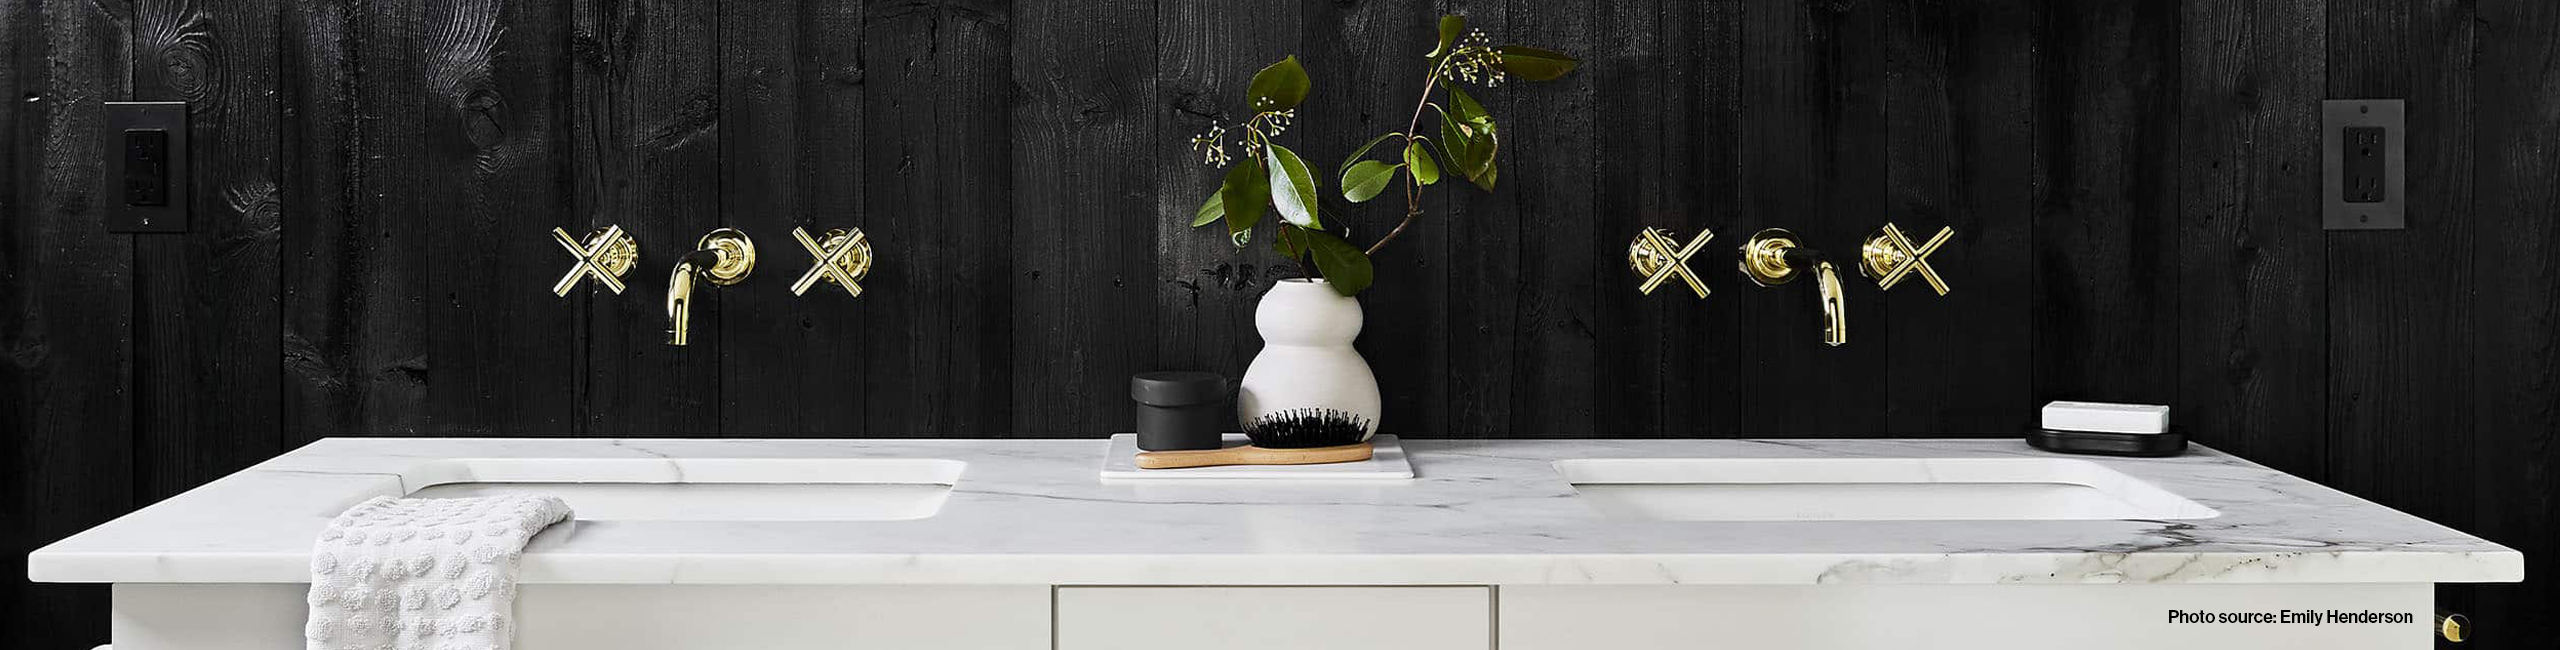 How to Spruce Up Your Bathroom - Magnifica Porcelain